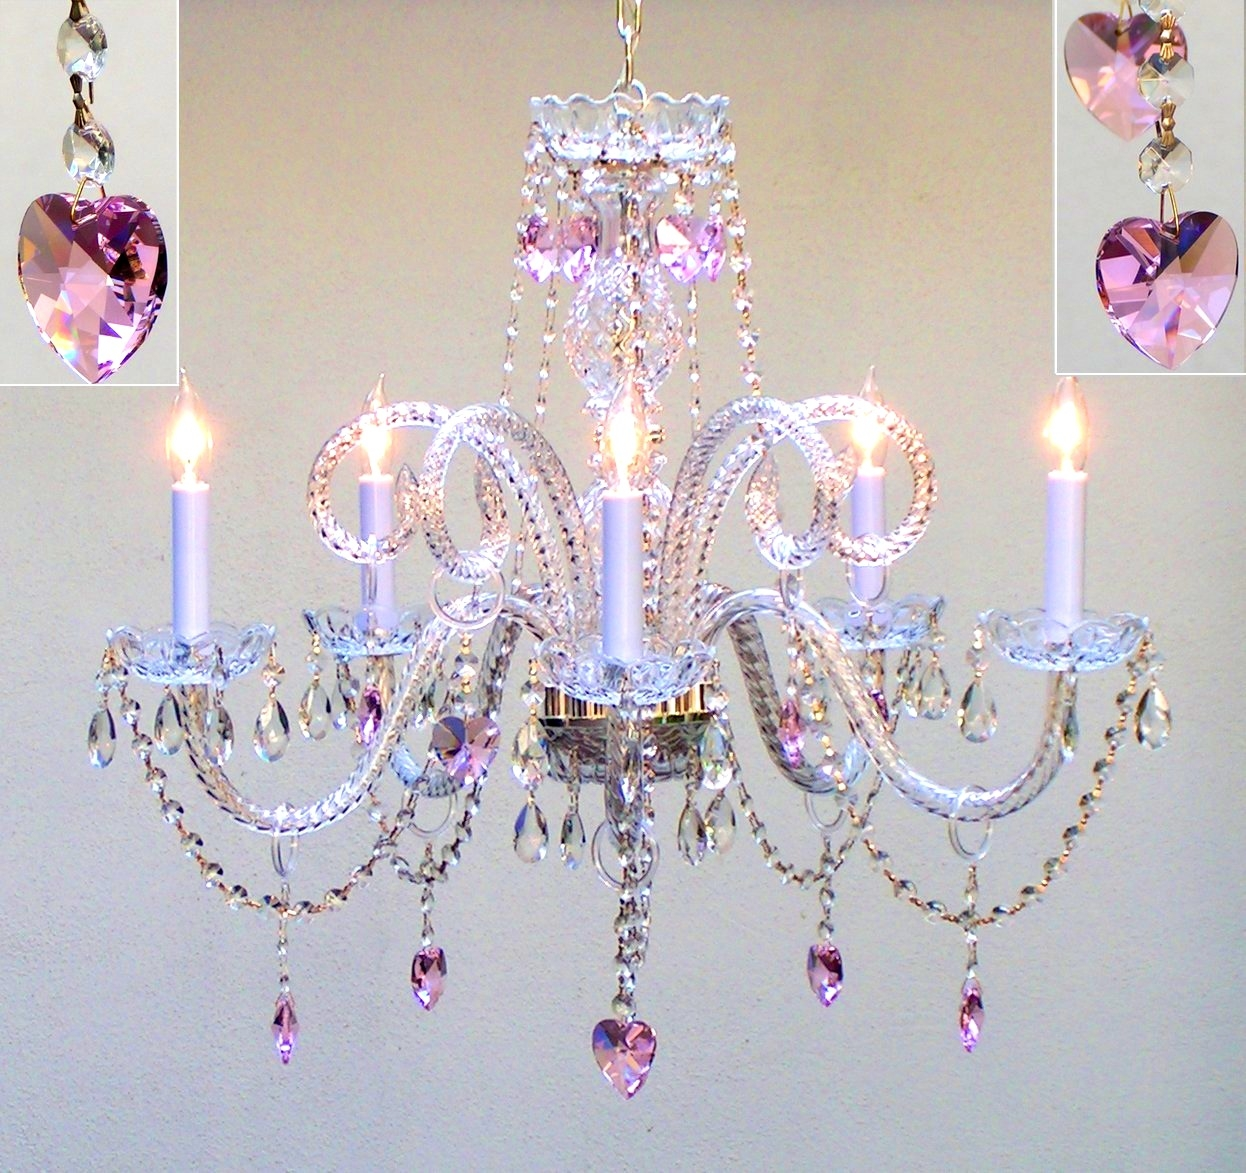 Chandelier Chandelier For Girls Room Online Get Cheap Aliexpress Intended For Cheap Chandeliers For Baby Girl Room (Image 5 of 25)